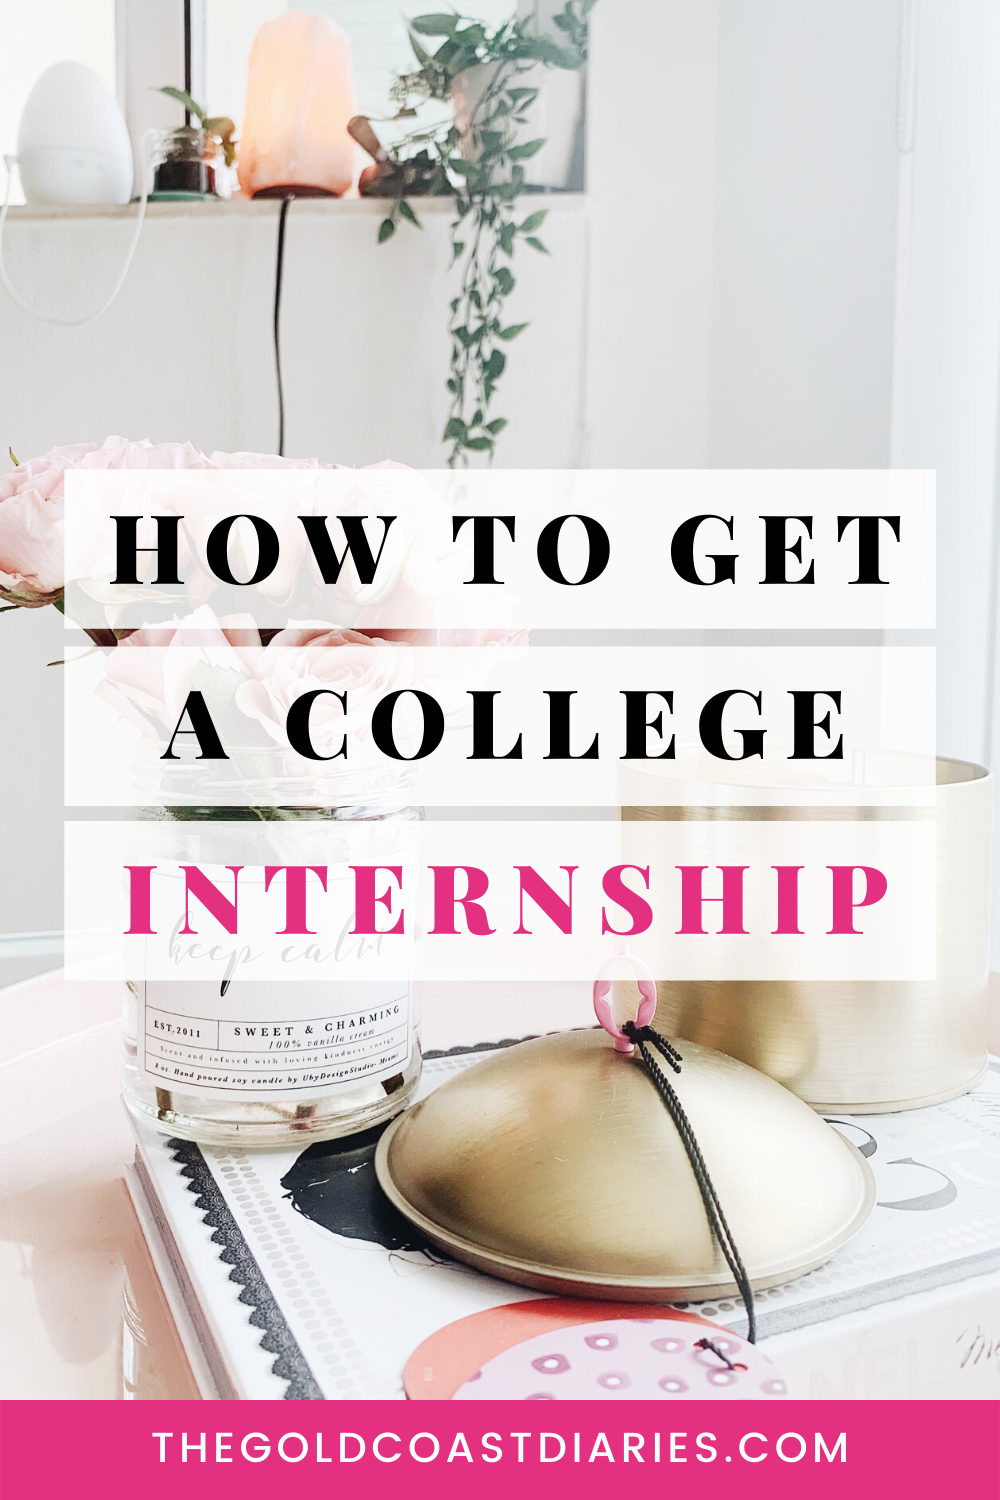 How To Get A College Internship In 2020 College Internship Internship Summer Internship